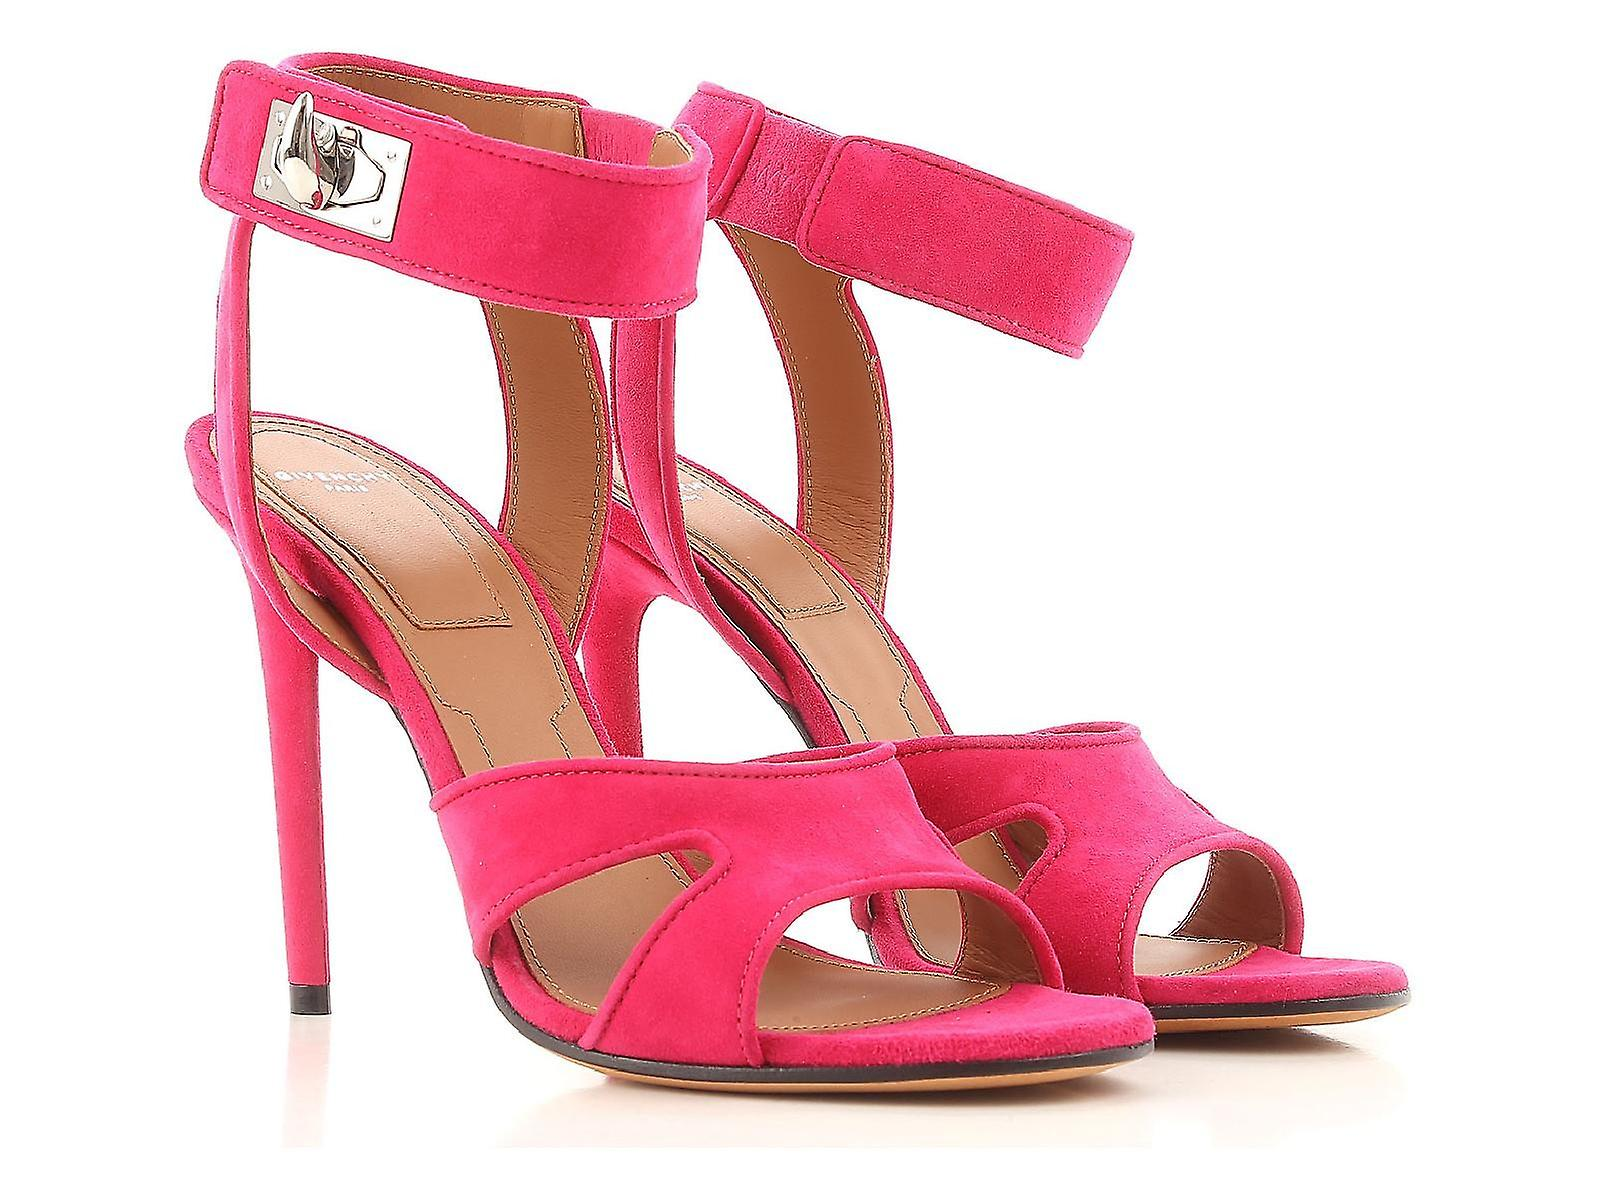 Givenchy stiletto heels sandals in fuxia suede leather T93R2